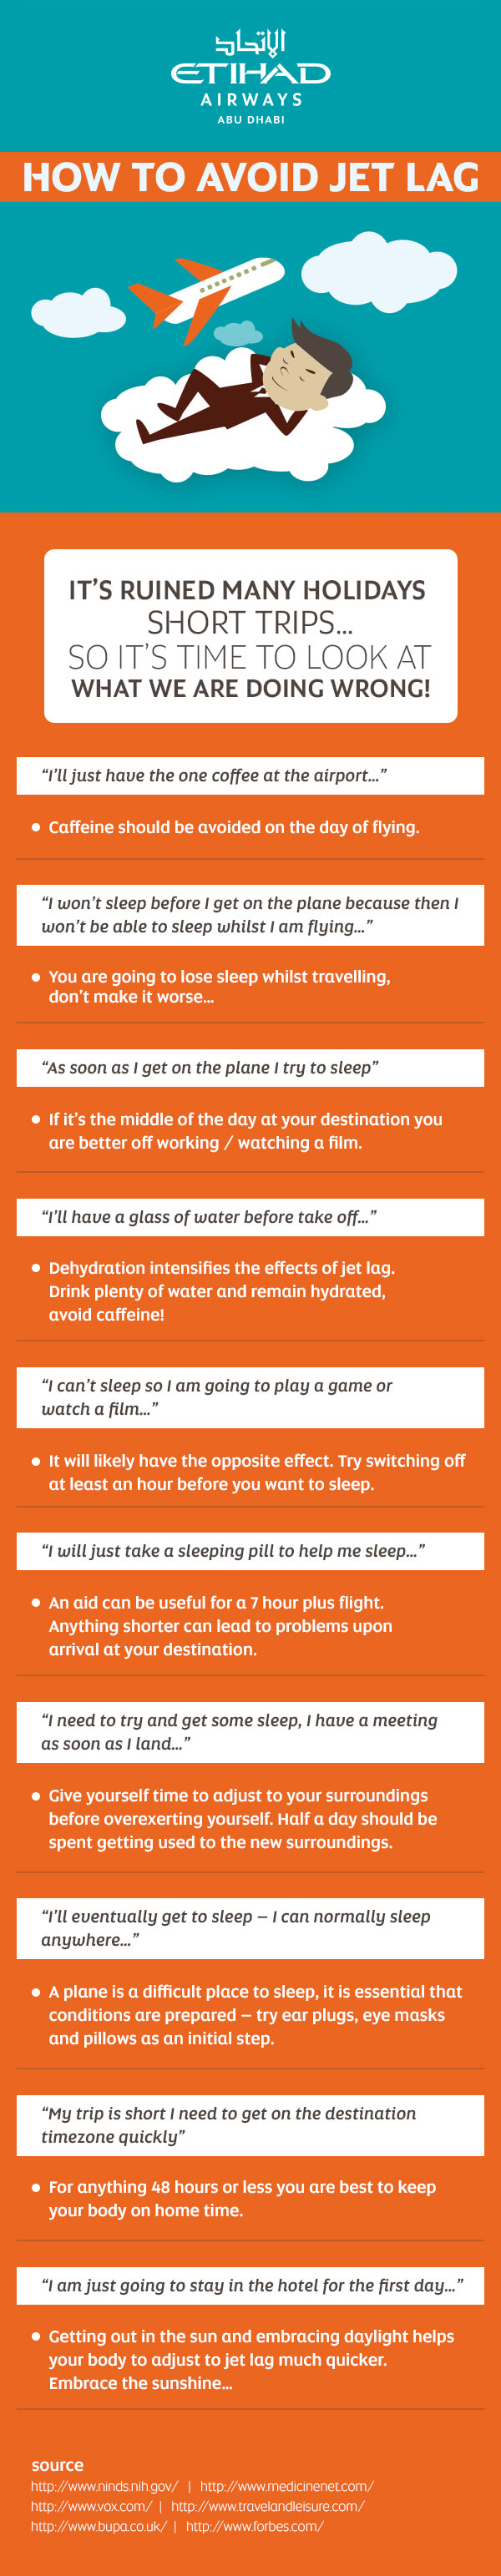 how-to-avoid-jet-lag-infographic